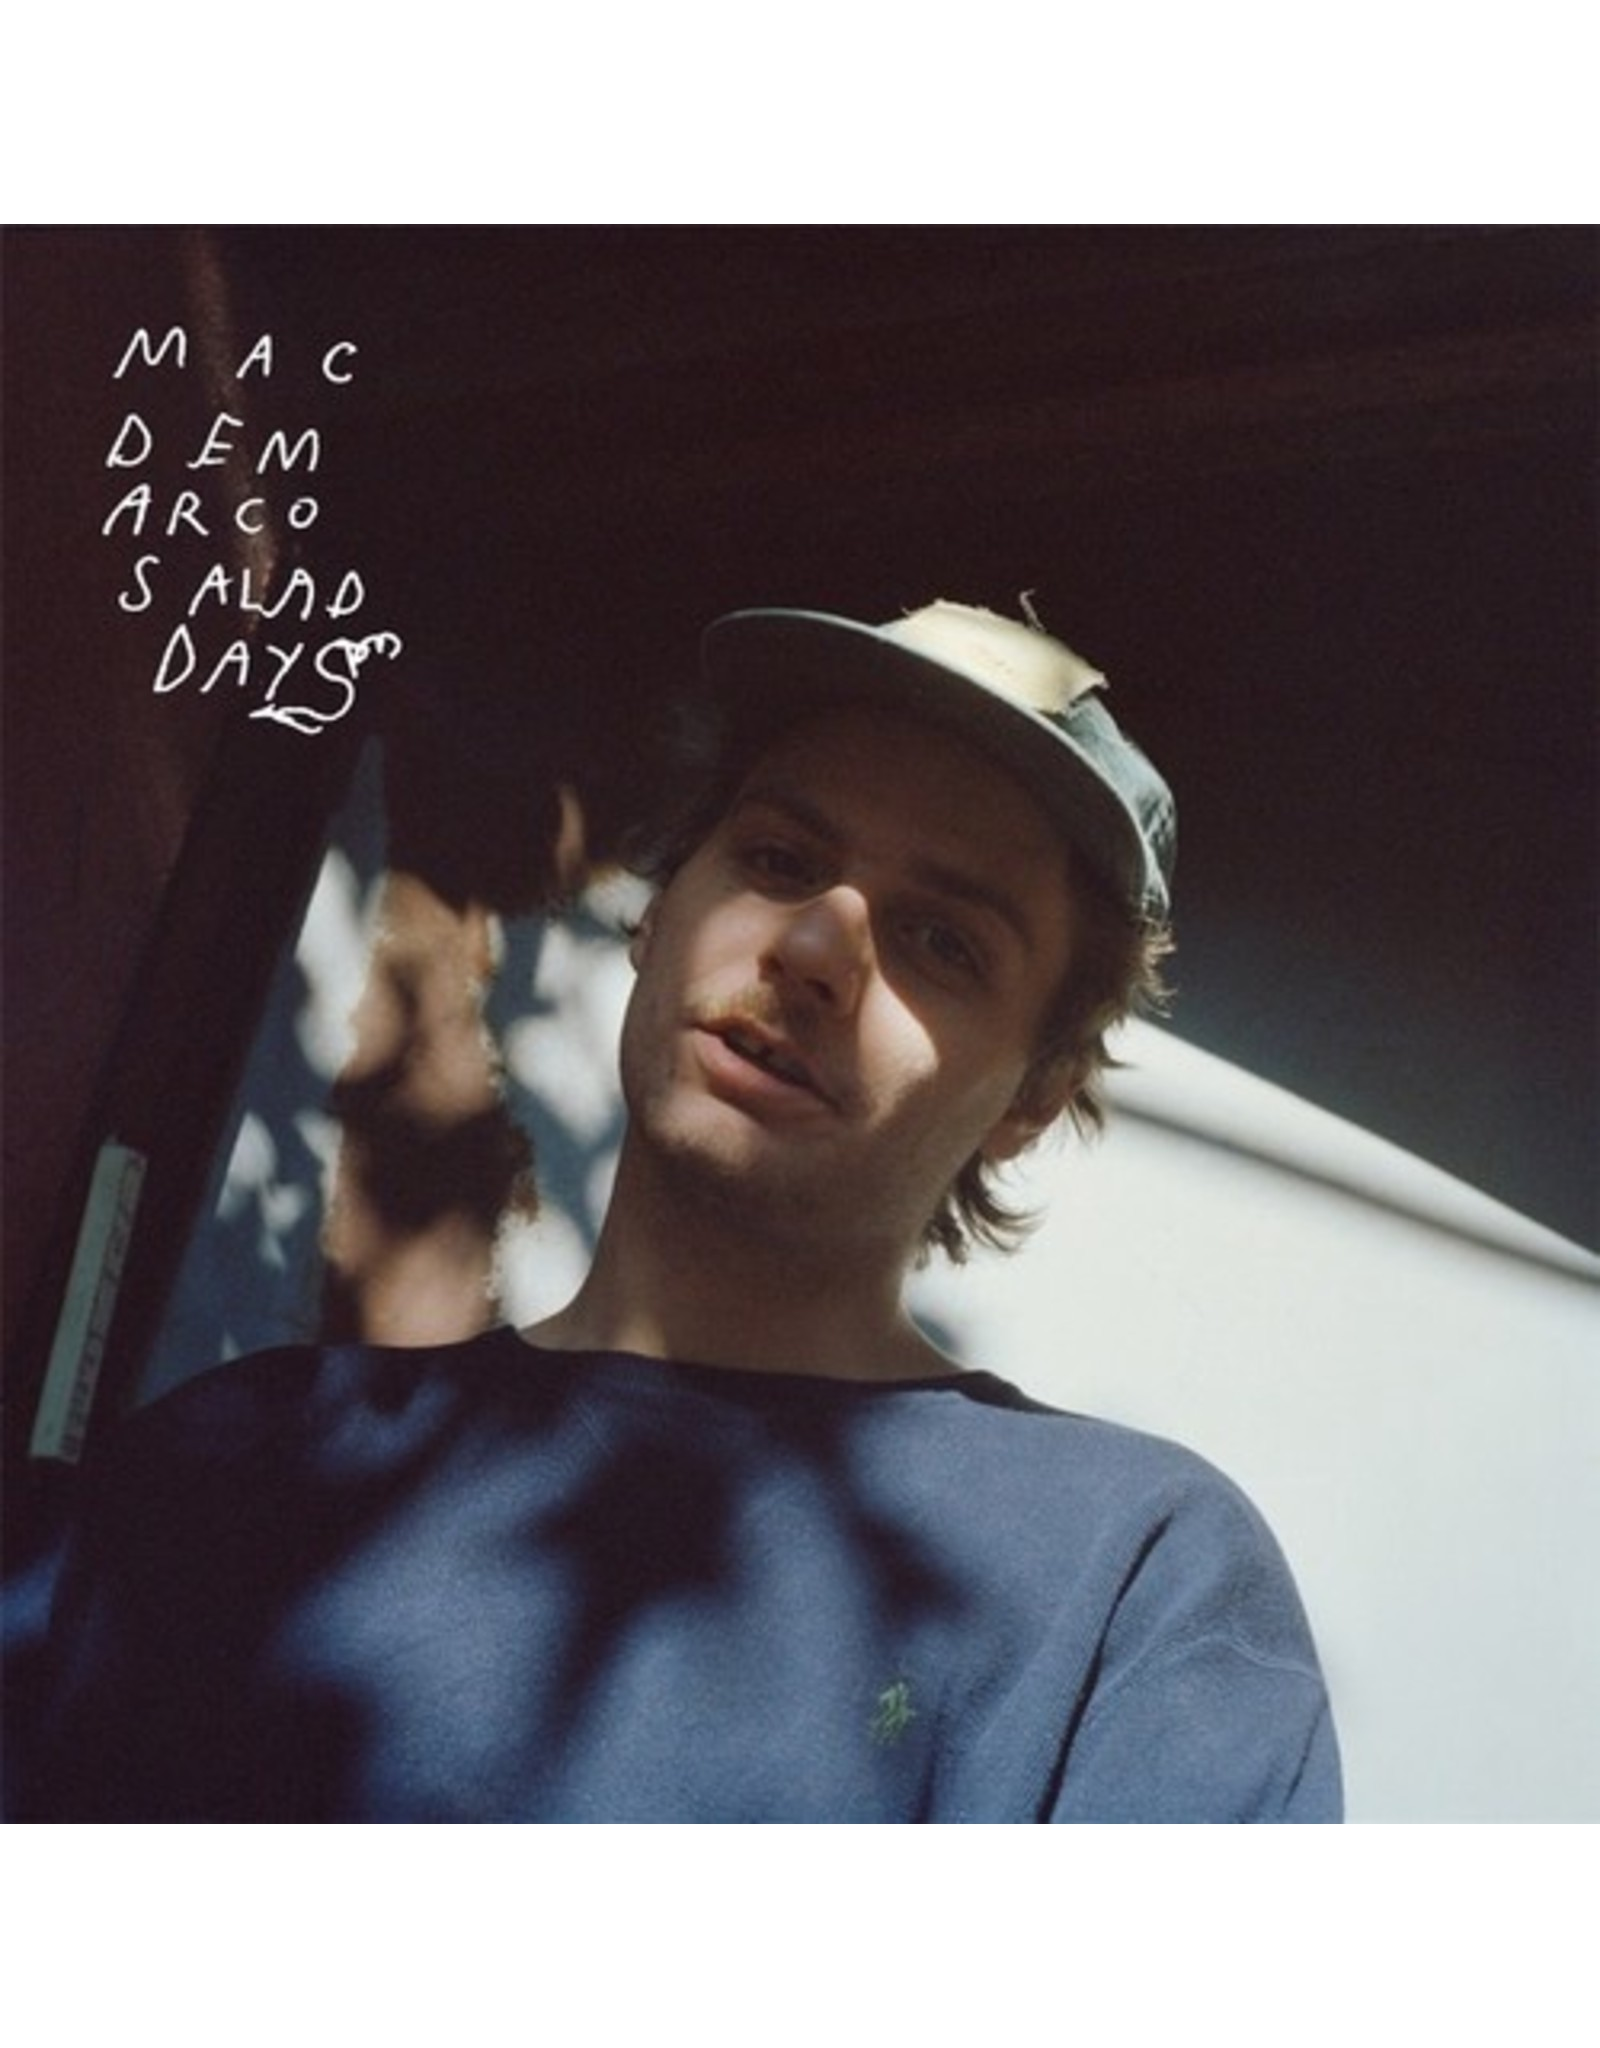 New Vinyl Mac Demarco - Salad Days LP